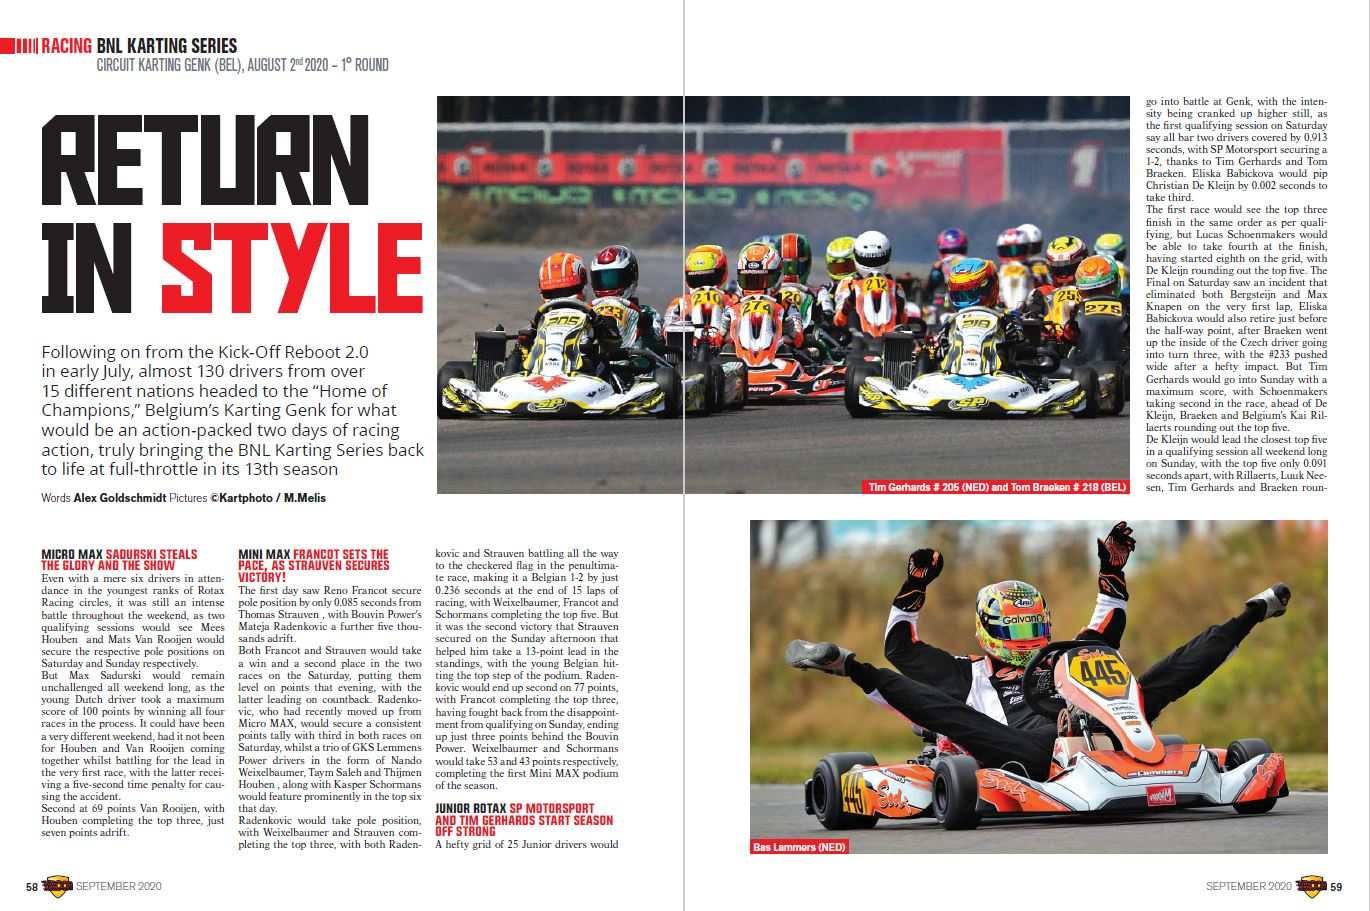 Racing - BNL karting series